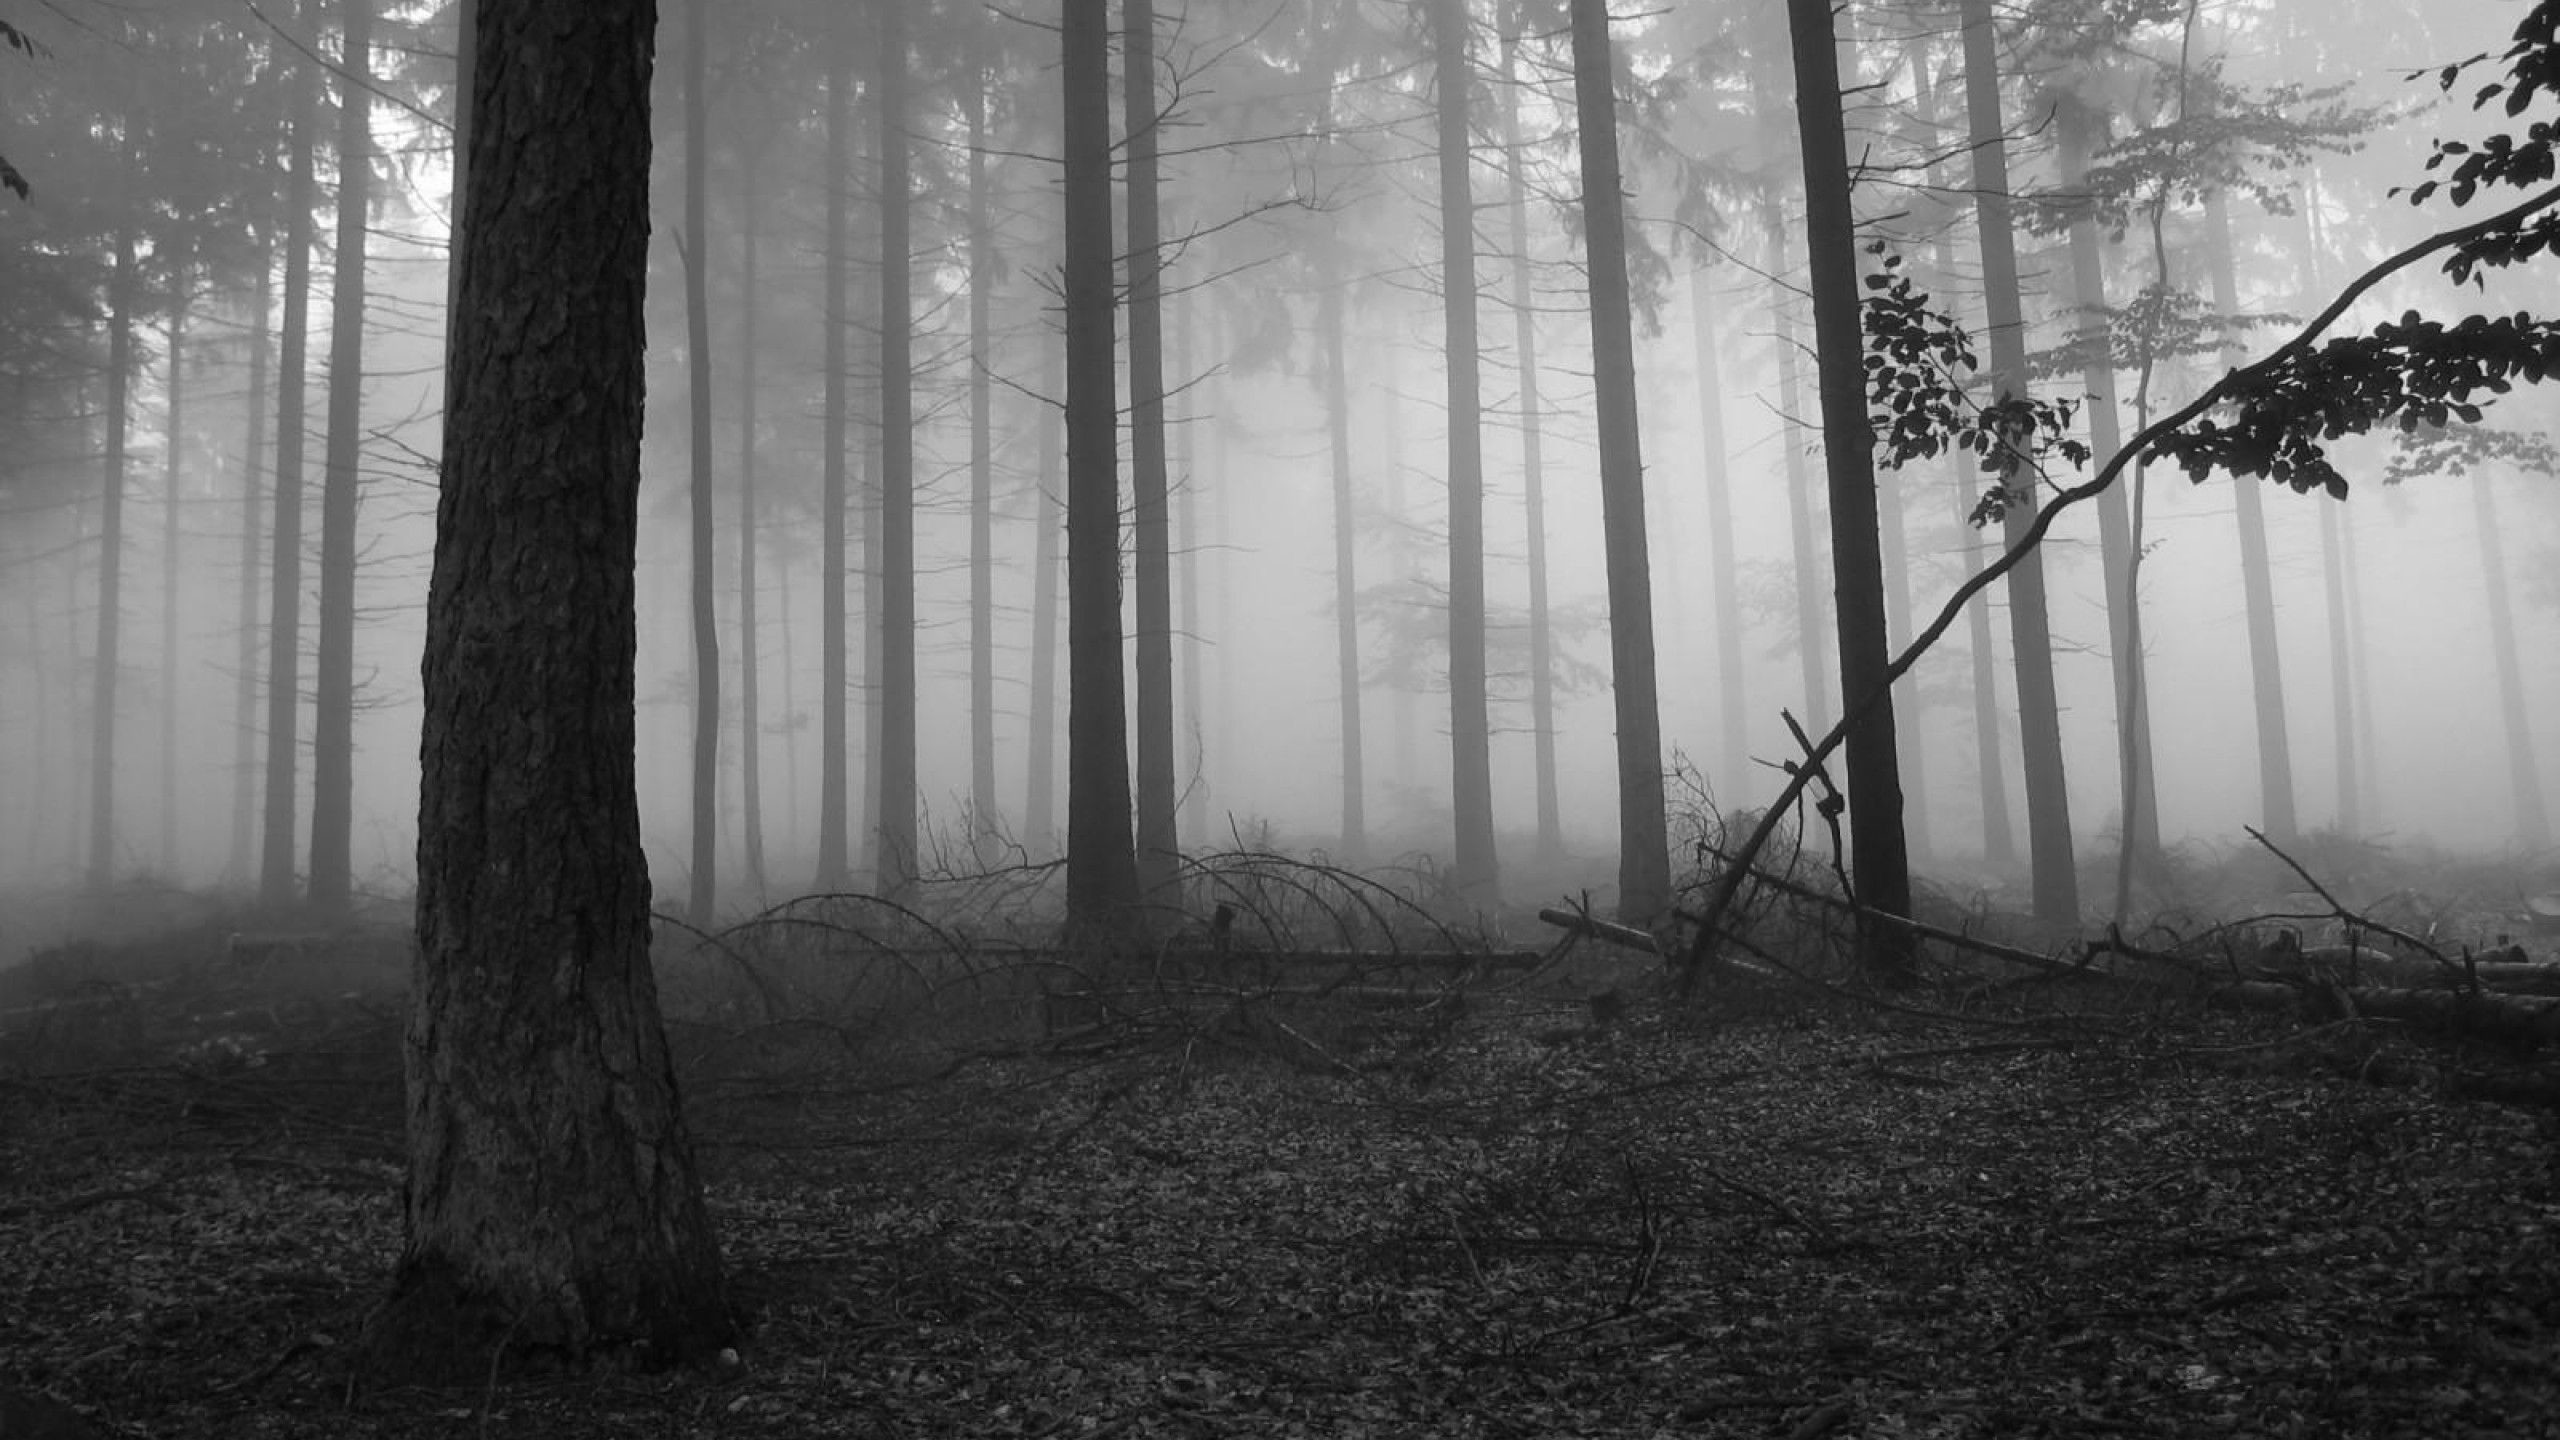 Res: 2560x1440, Fog in the dark forest Nature HD desktop wallpaper, Tree wallpaper, Forest  wallpaper, Fog wallpaper, Branch wallpaper - Nature no.